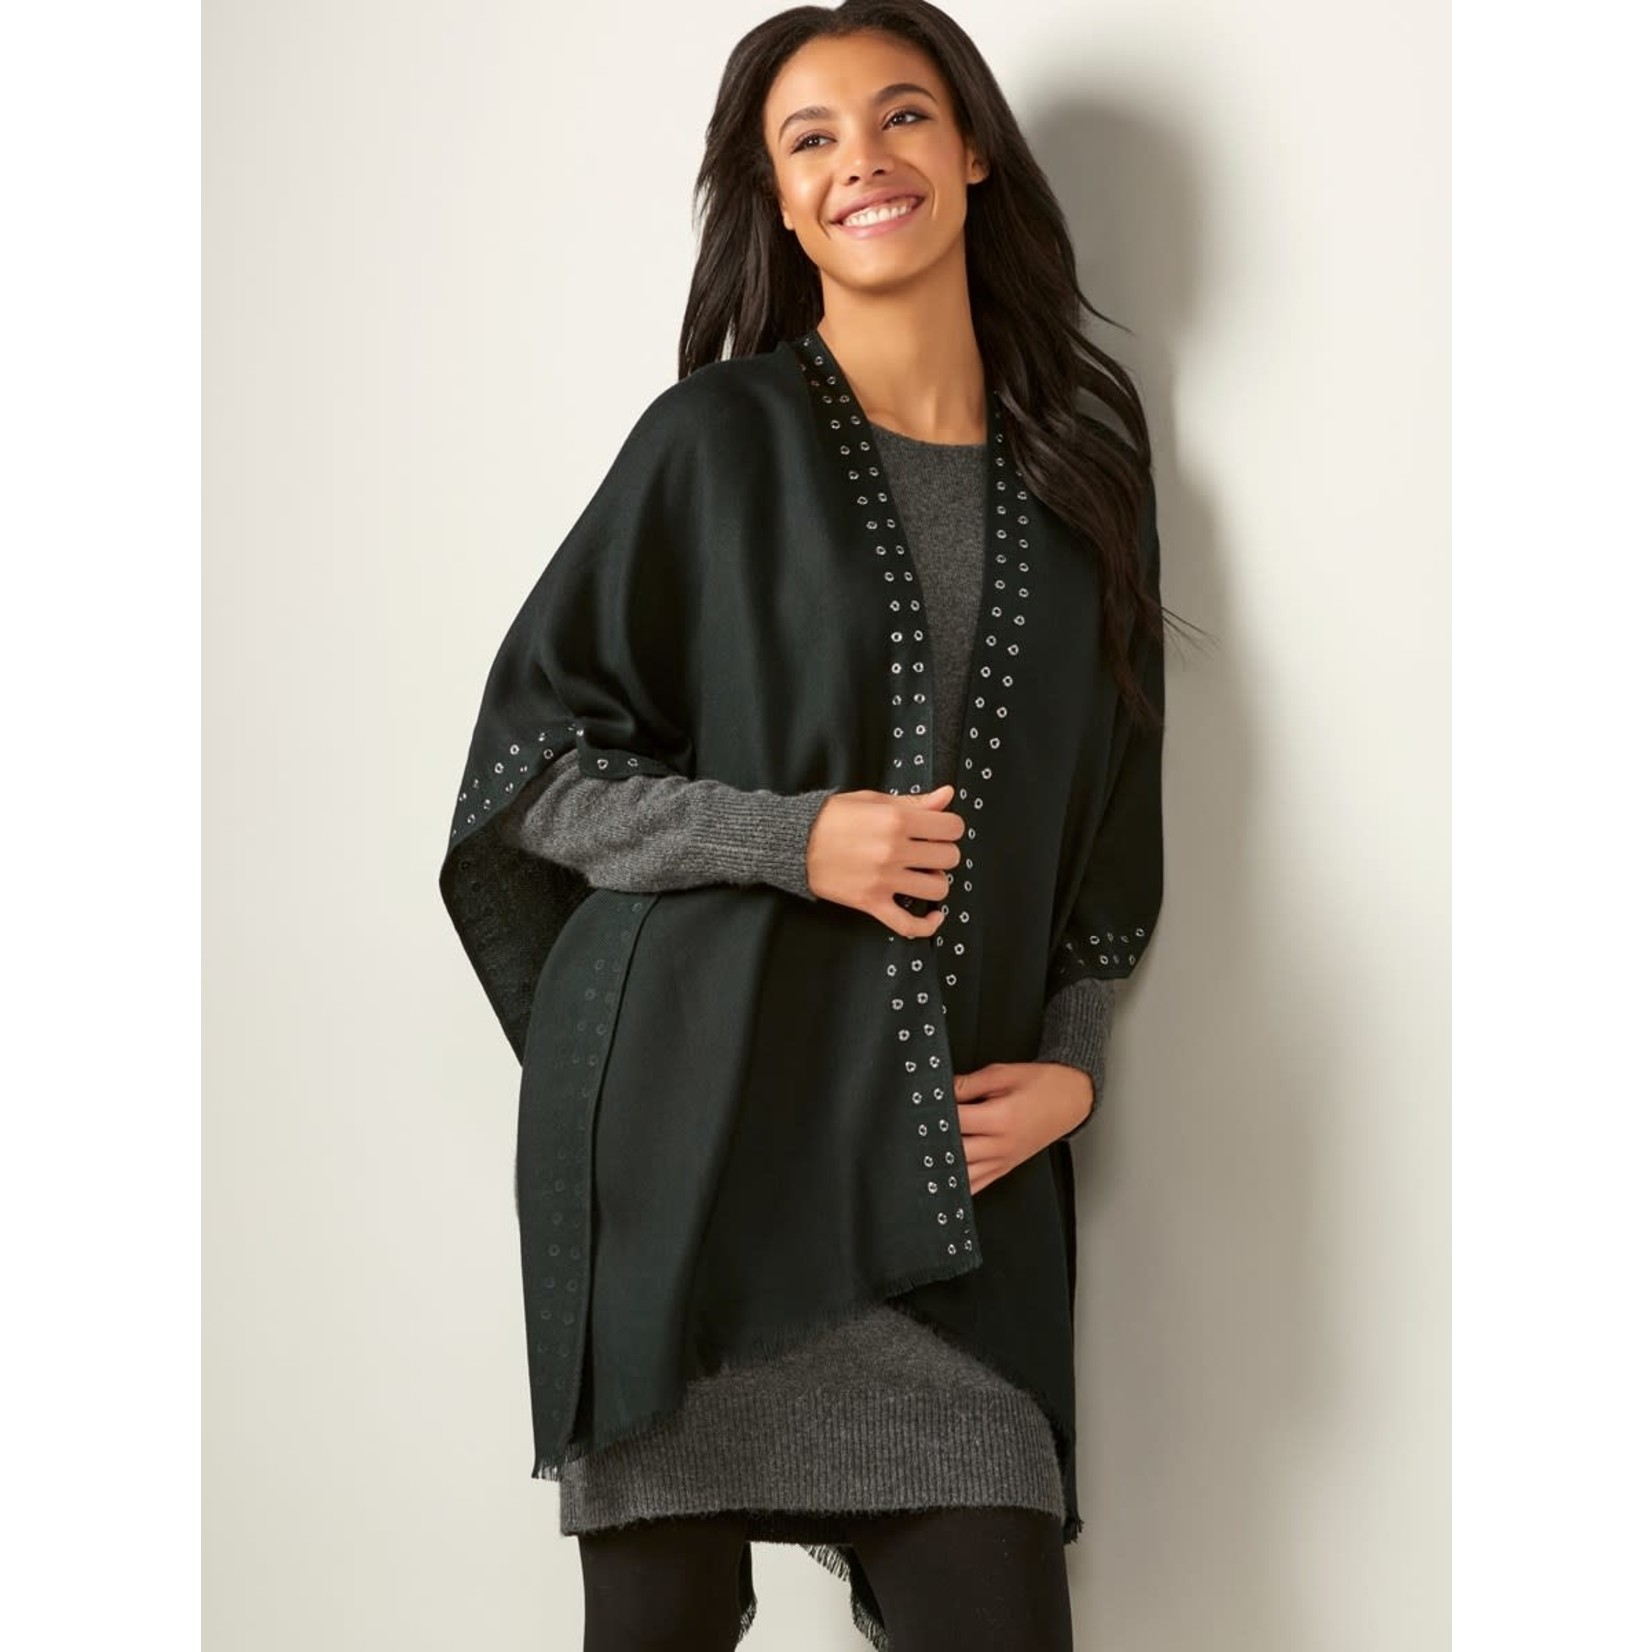 Charlie Paige Silver Grommet Trimmed Soft City Cape in Black/ One Size